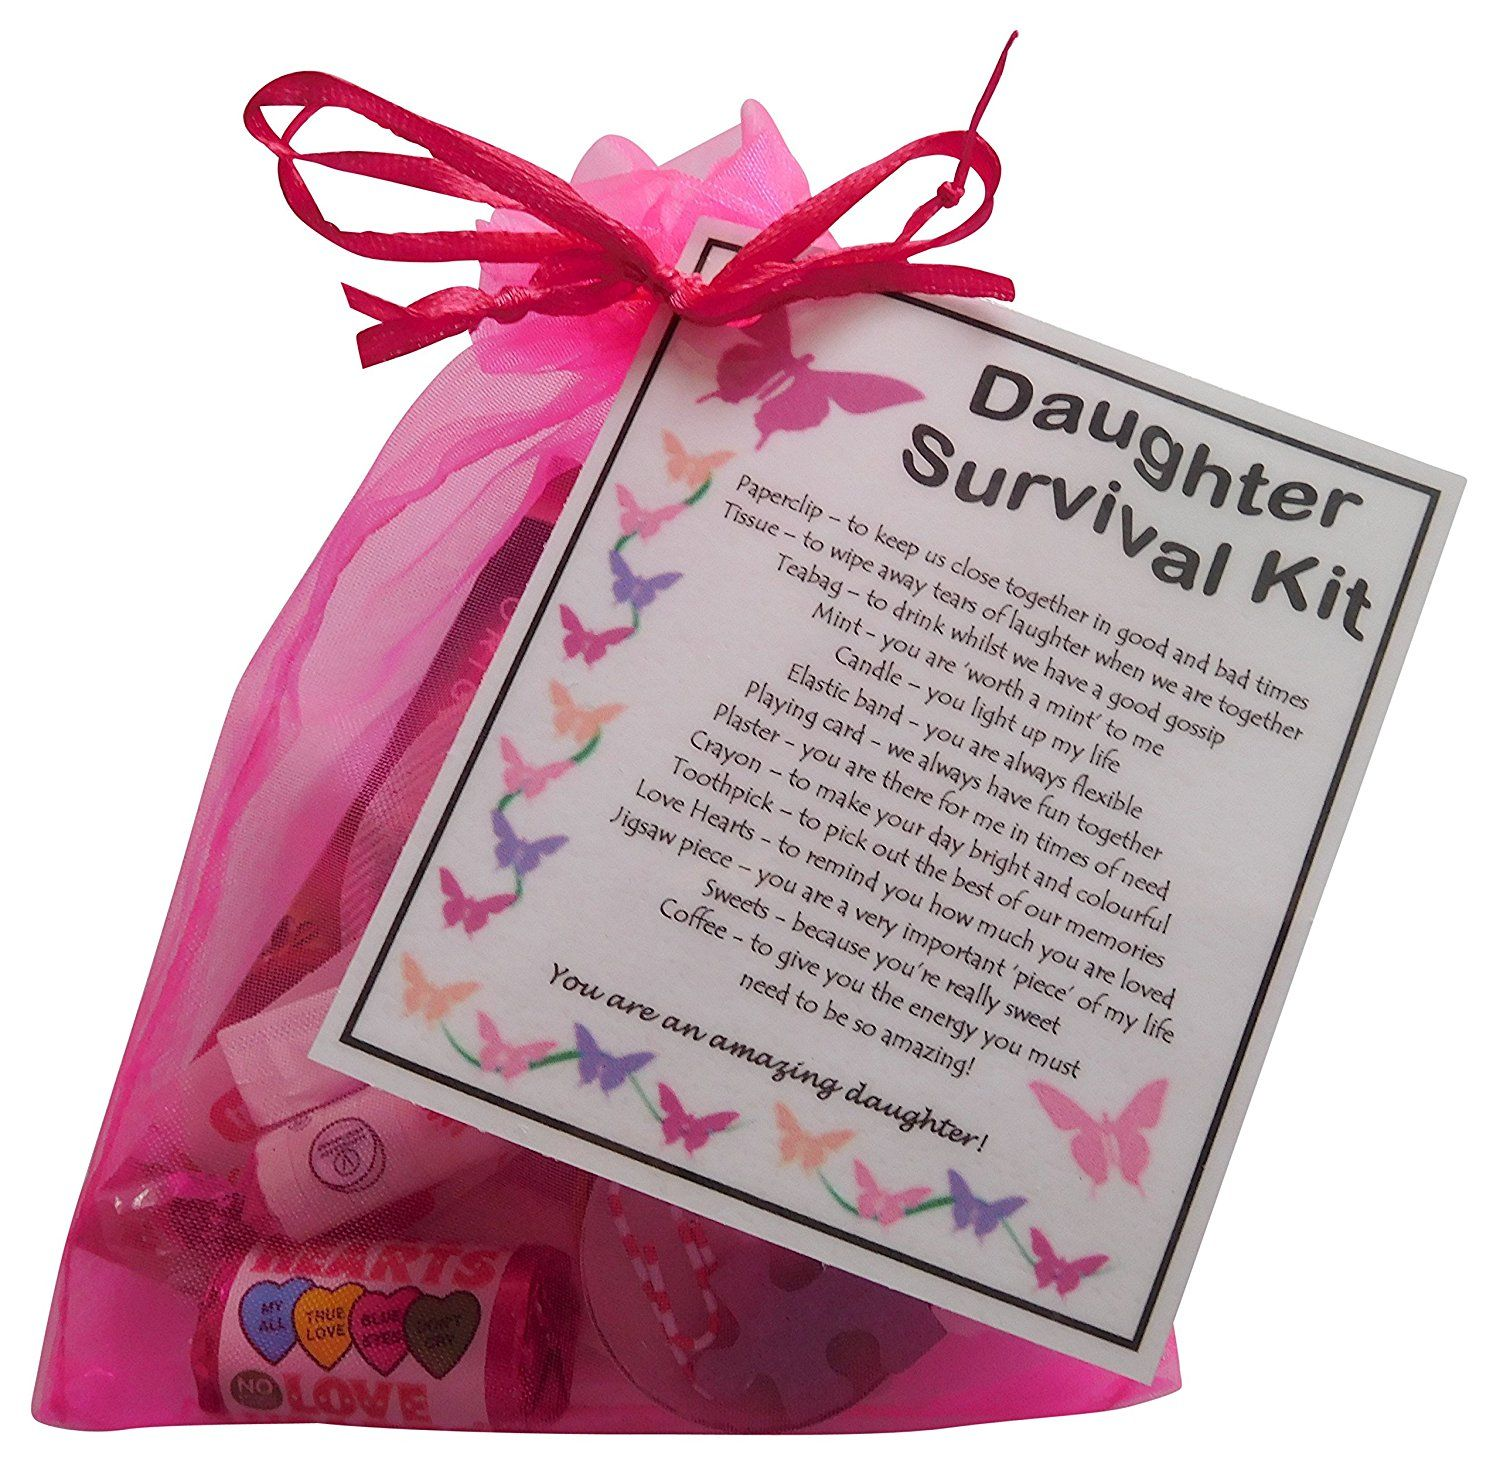 Daughter Survival Kit Gift (Great present for Birthday